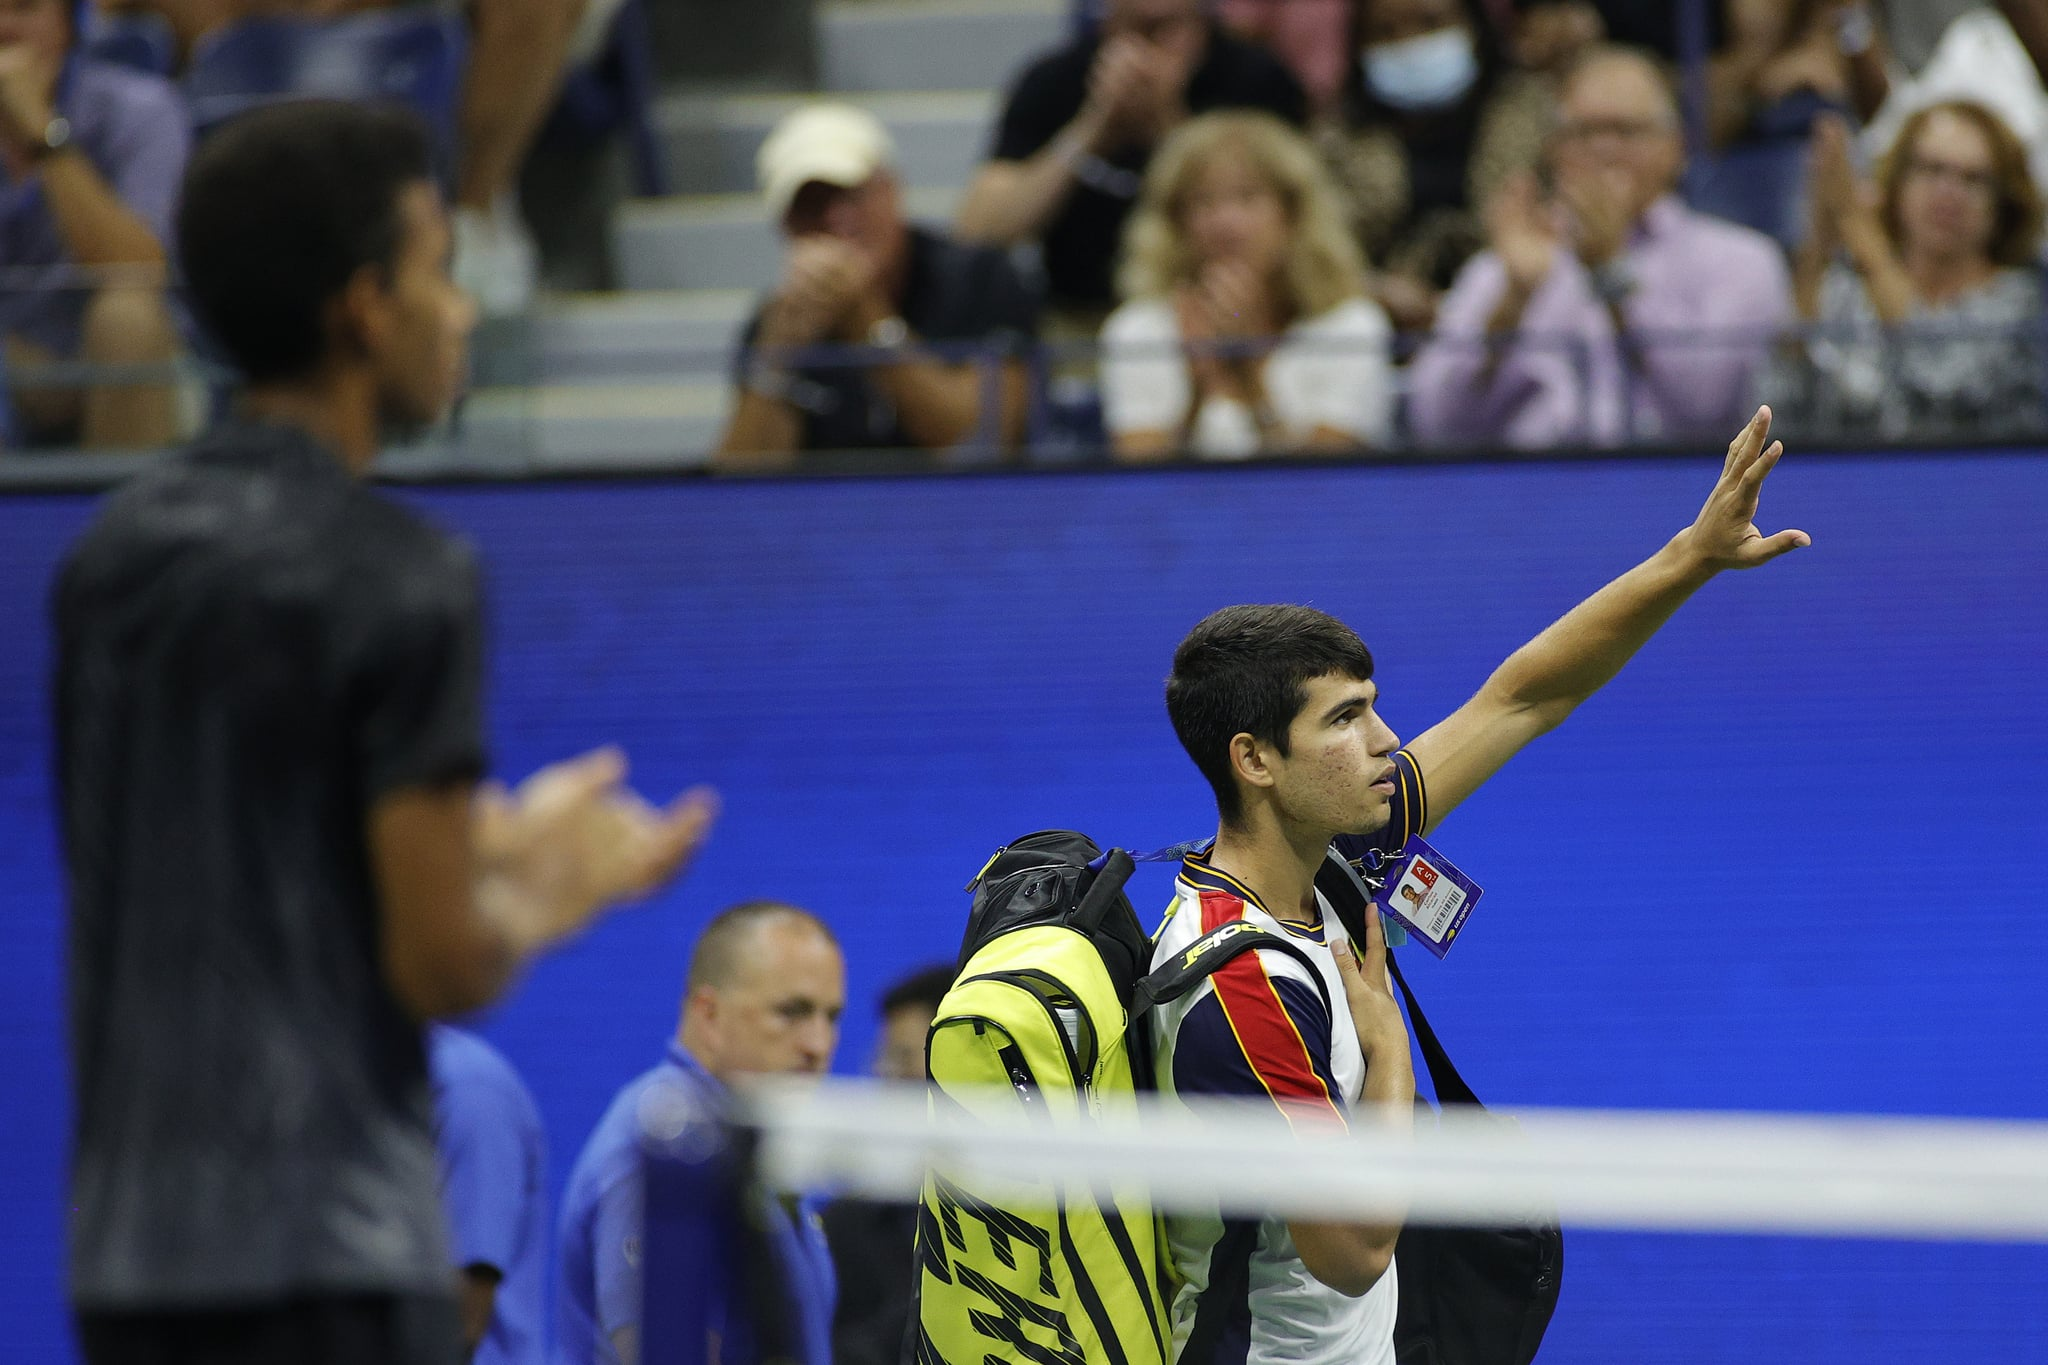 NEW YORK, NEW YORK - SEPTEMBER 07: Carlos Alcaraz of Spain looks waves to the crowd as he leaves the court after retiring during his Men's Singles quarterfinals match against Felix Auger-Aliassime of Canada during on Day Nine of the 2021 US Open at the USTA Billie Jean King National Tennis Center on September 07, 2021 in the Flushing neighborhood of the Queens borough of New York City. (Photo by Sarah Stier/Getty Images)